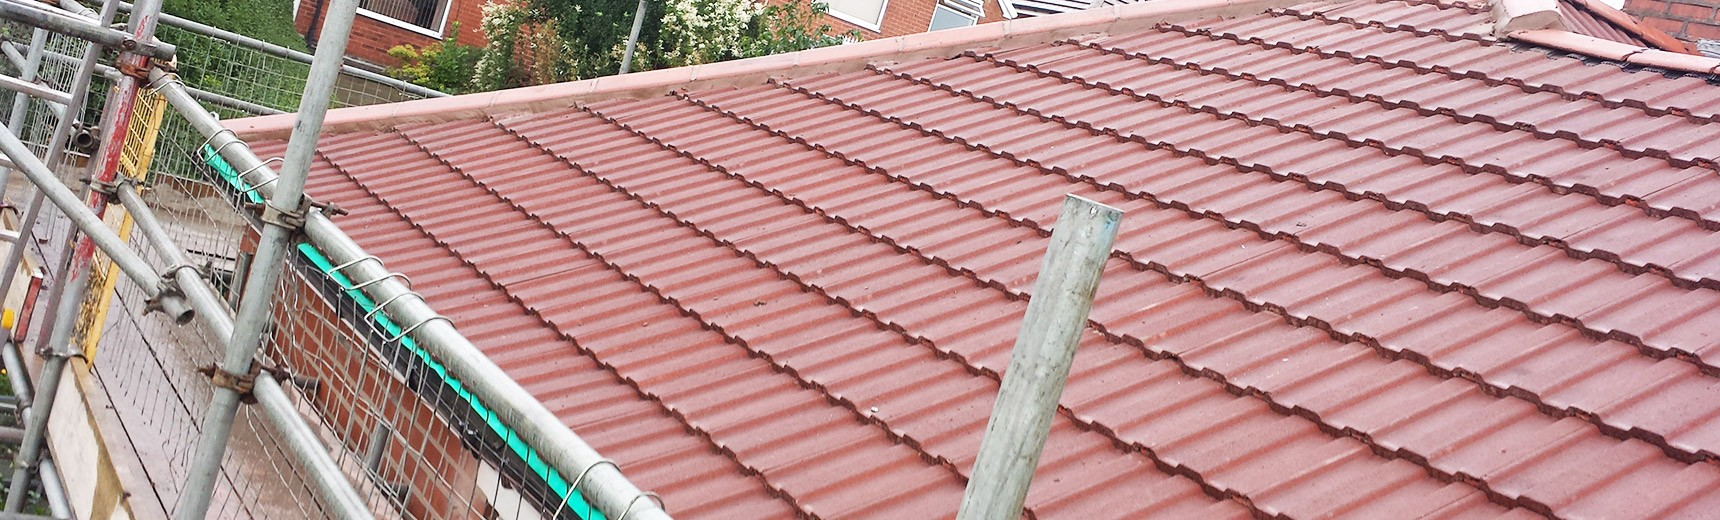 Roofer constructing a tiled roof